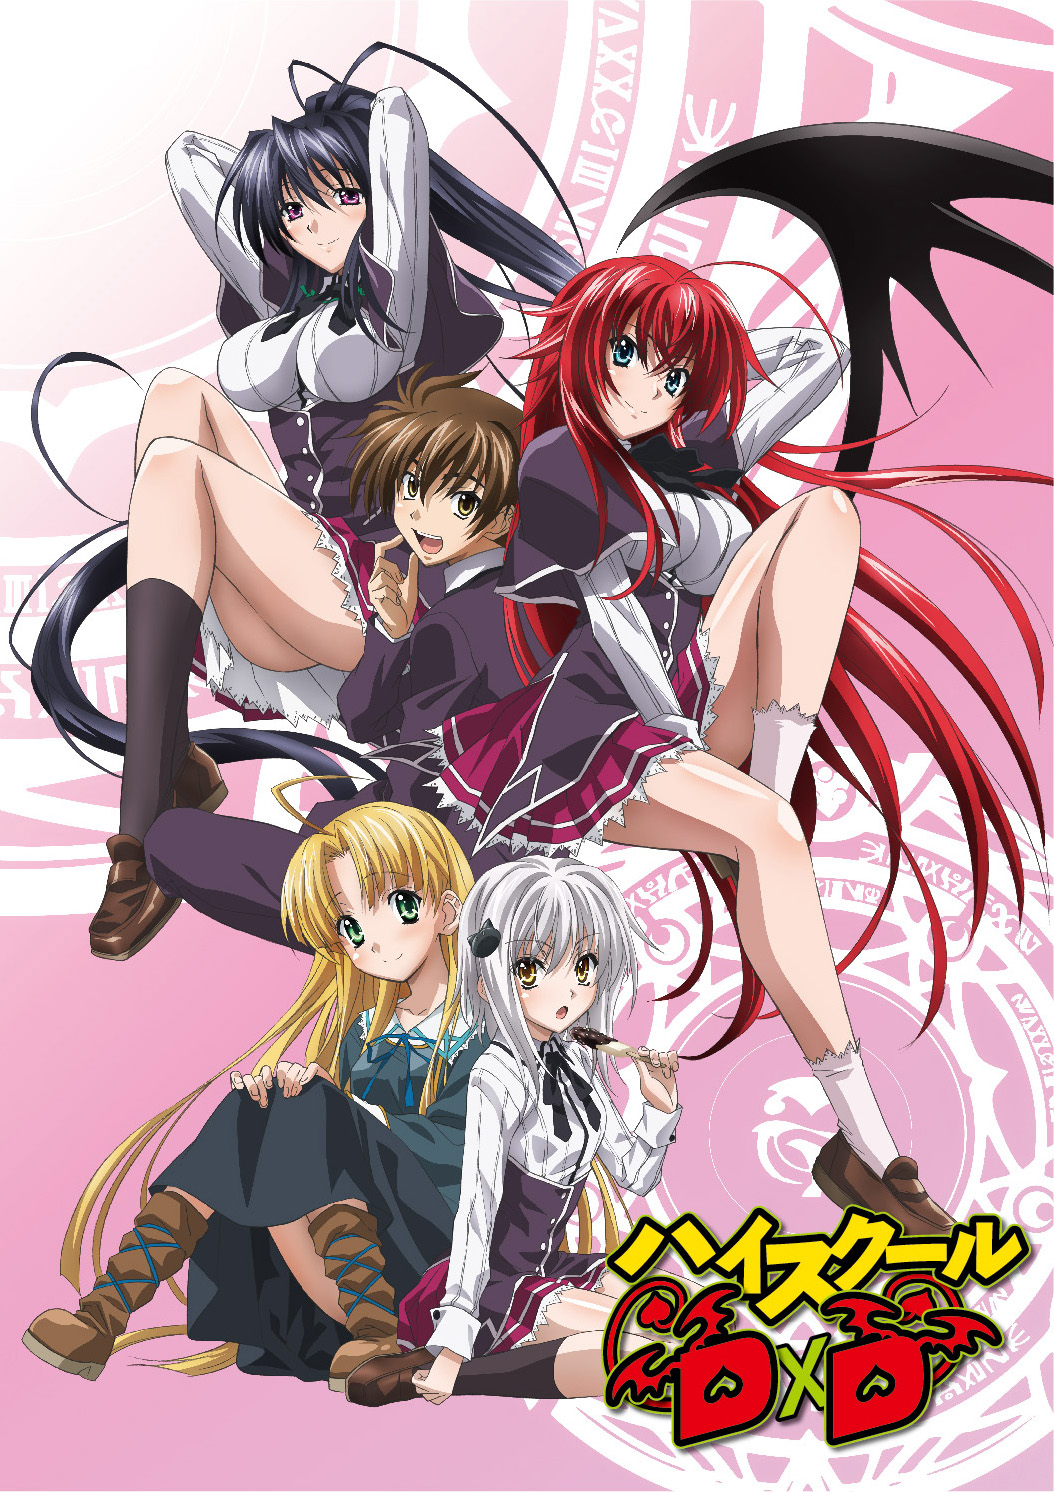 High school dxd anime